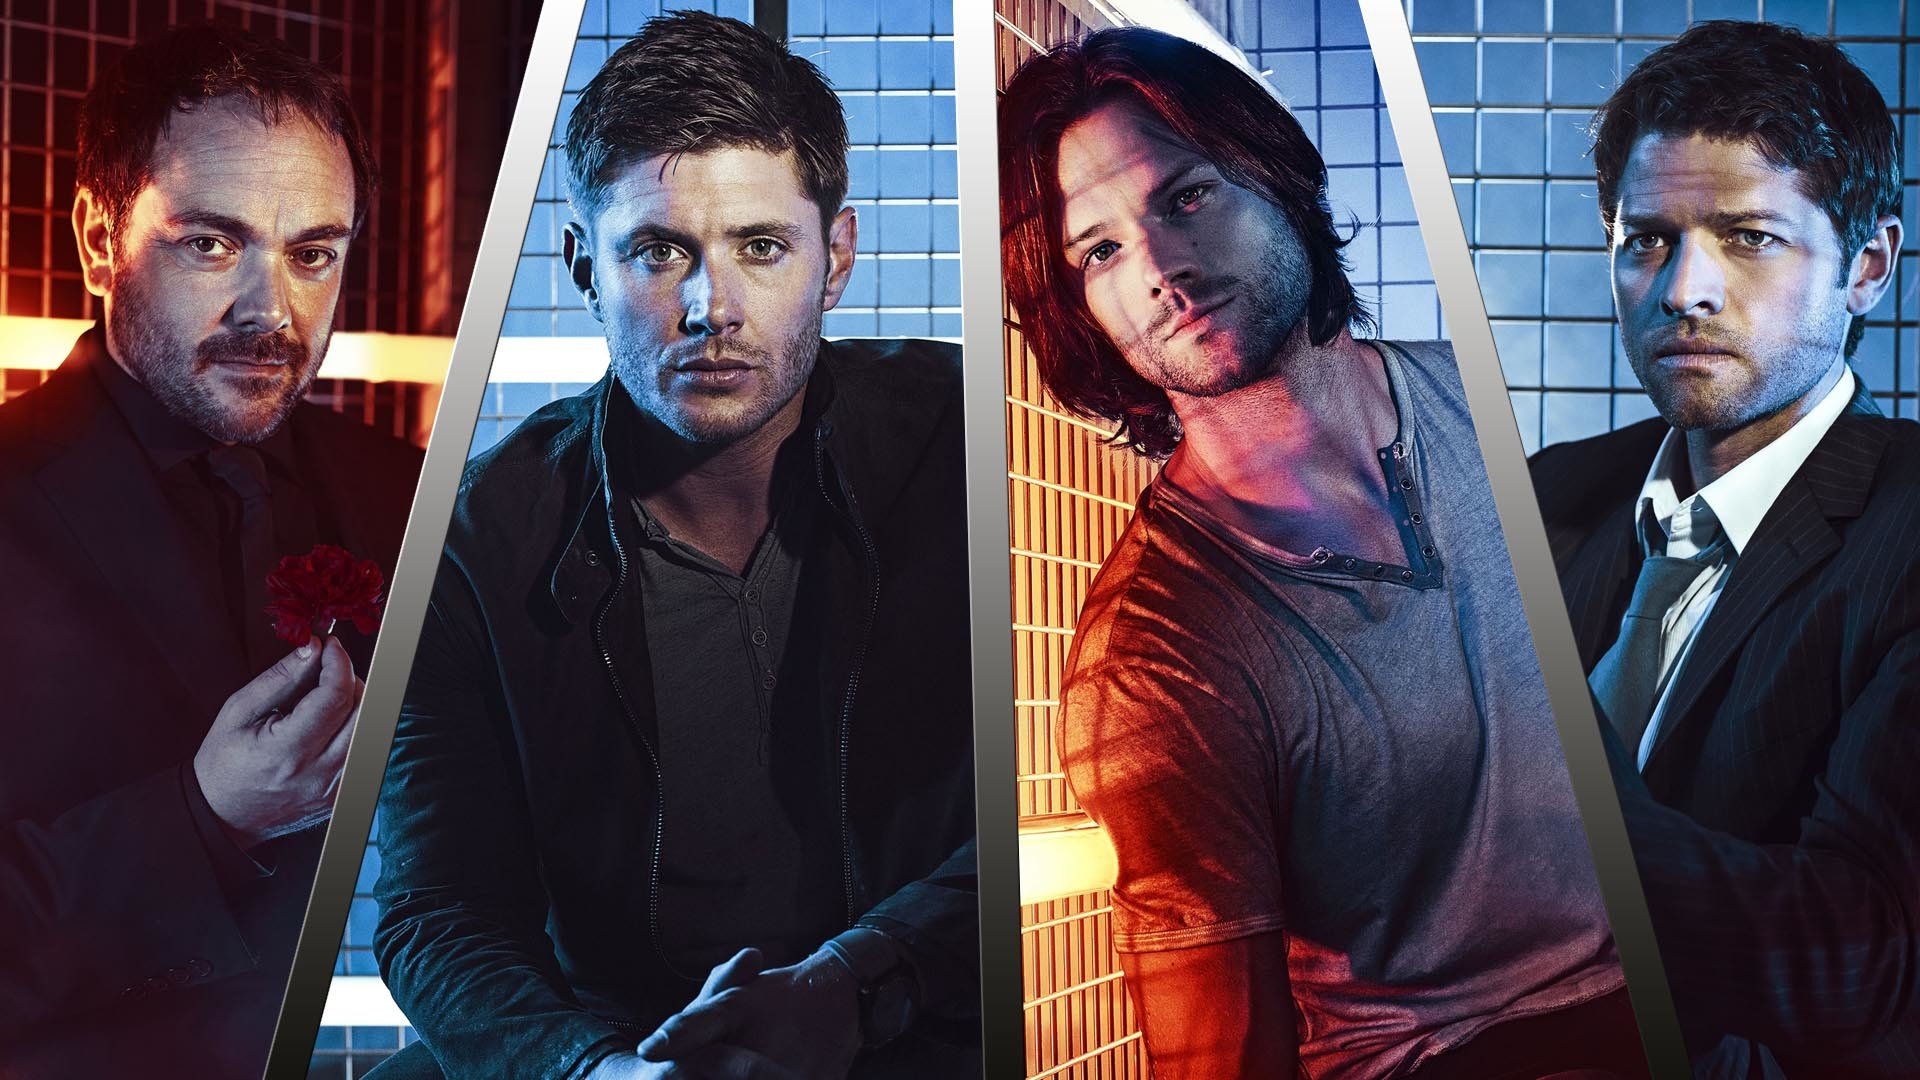 Supernatural Wallpaper 2018 Backgrounds Photos Images Pictures Yl Computing